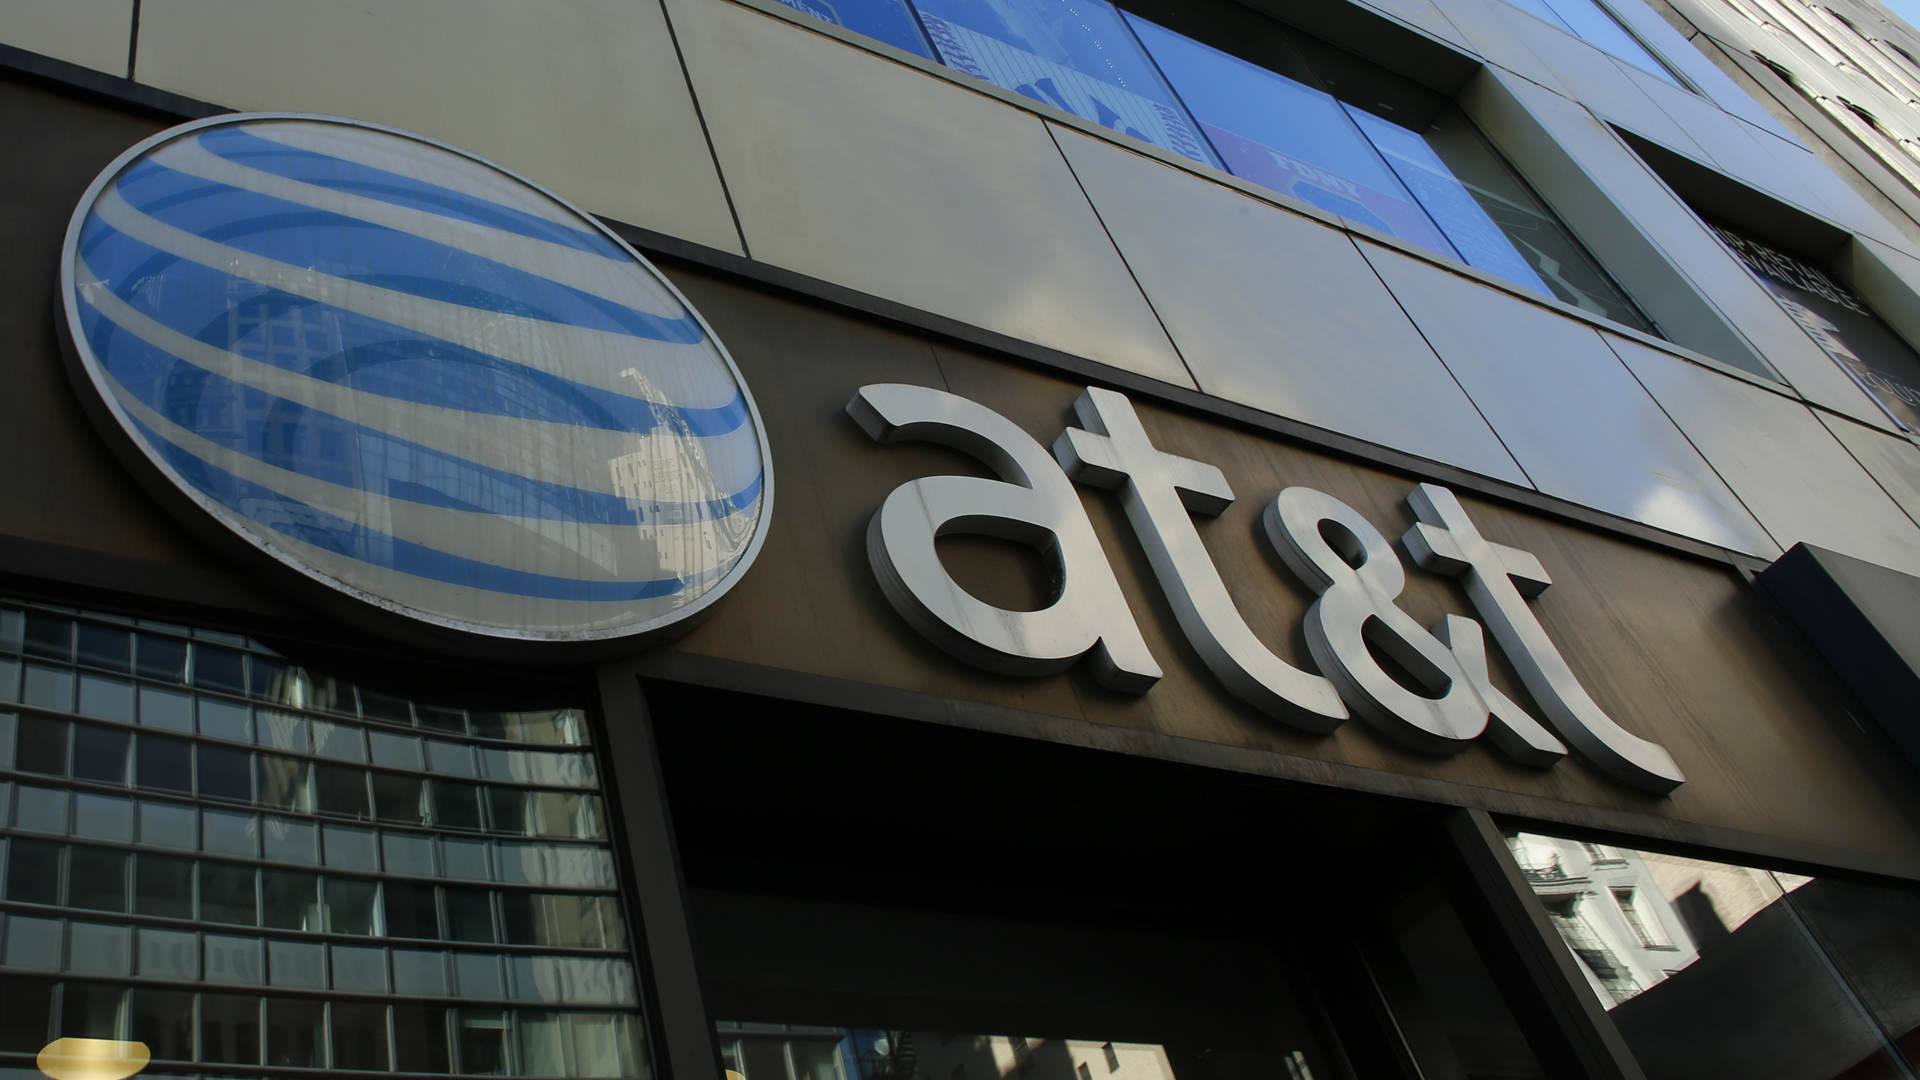 An AT&T sign at a store in New York City is seen in this file photo from Oct. 23, 2016. (KENA BETANCUR/AFP via Getty Images)